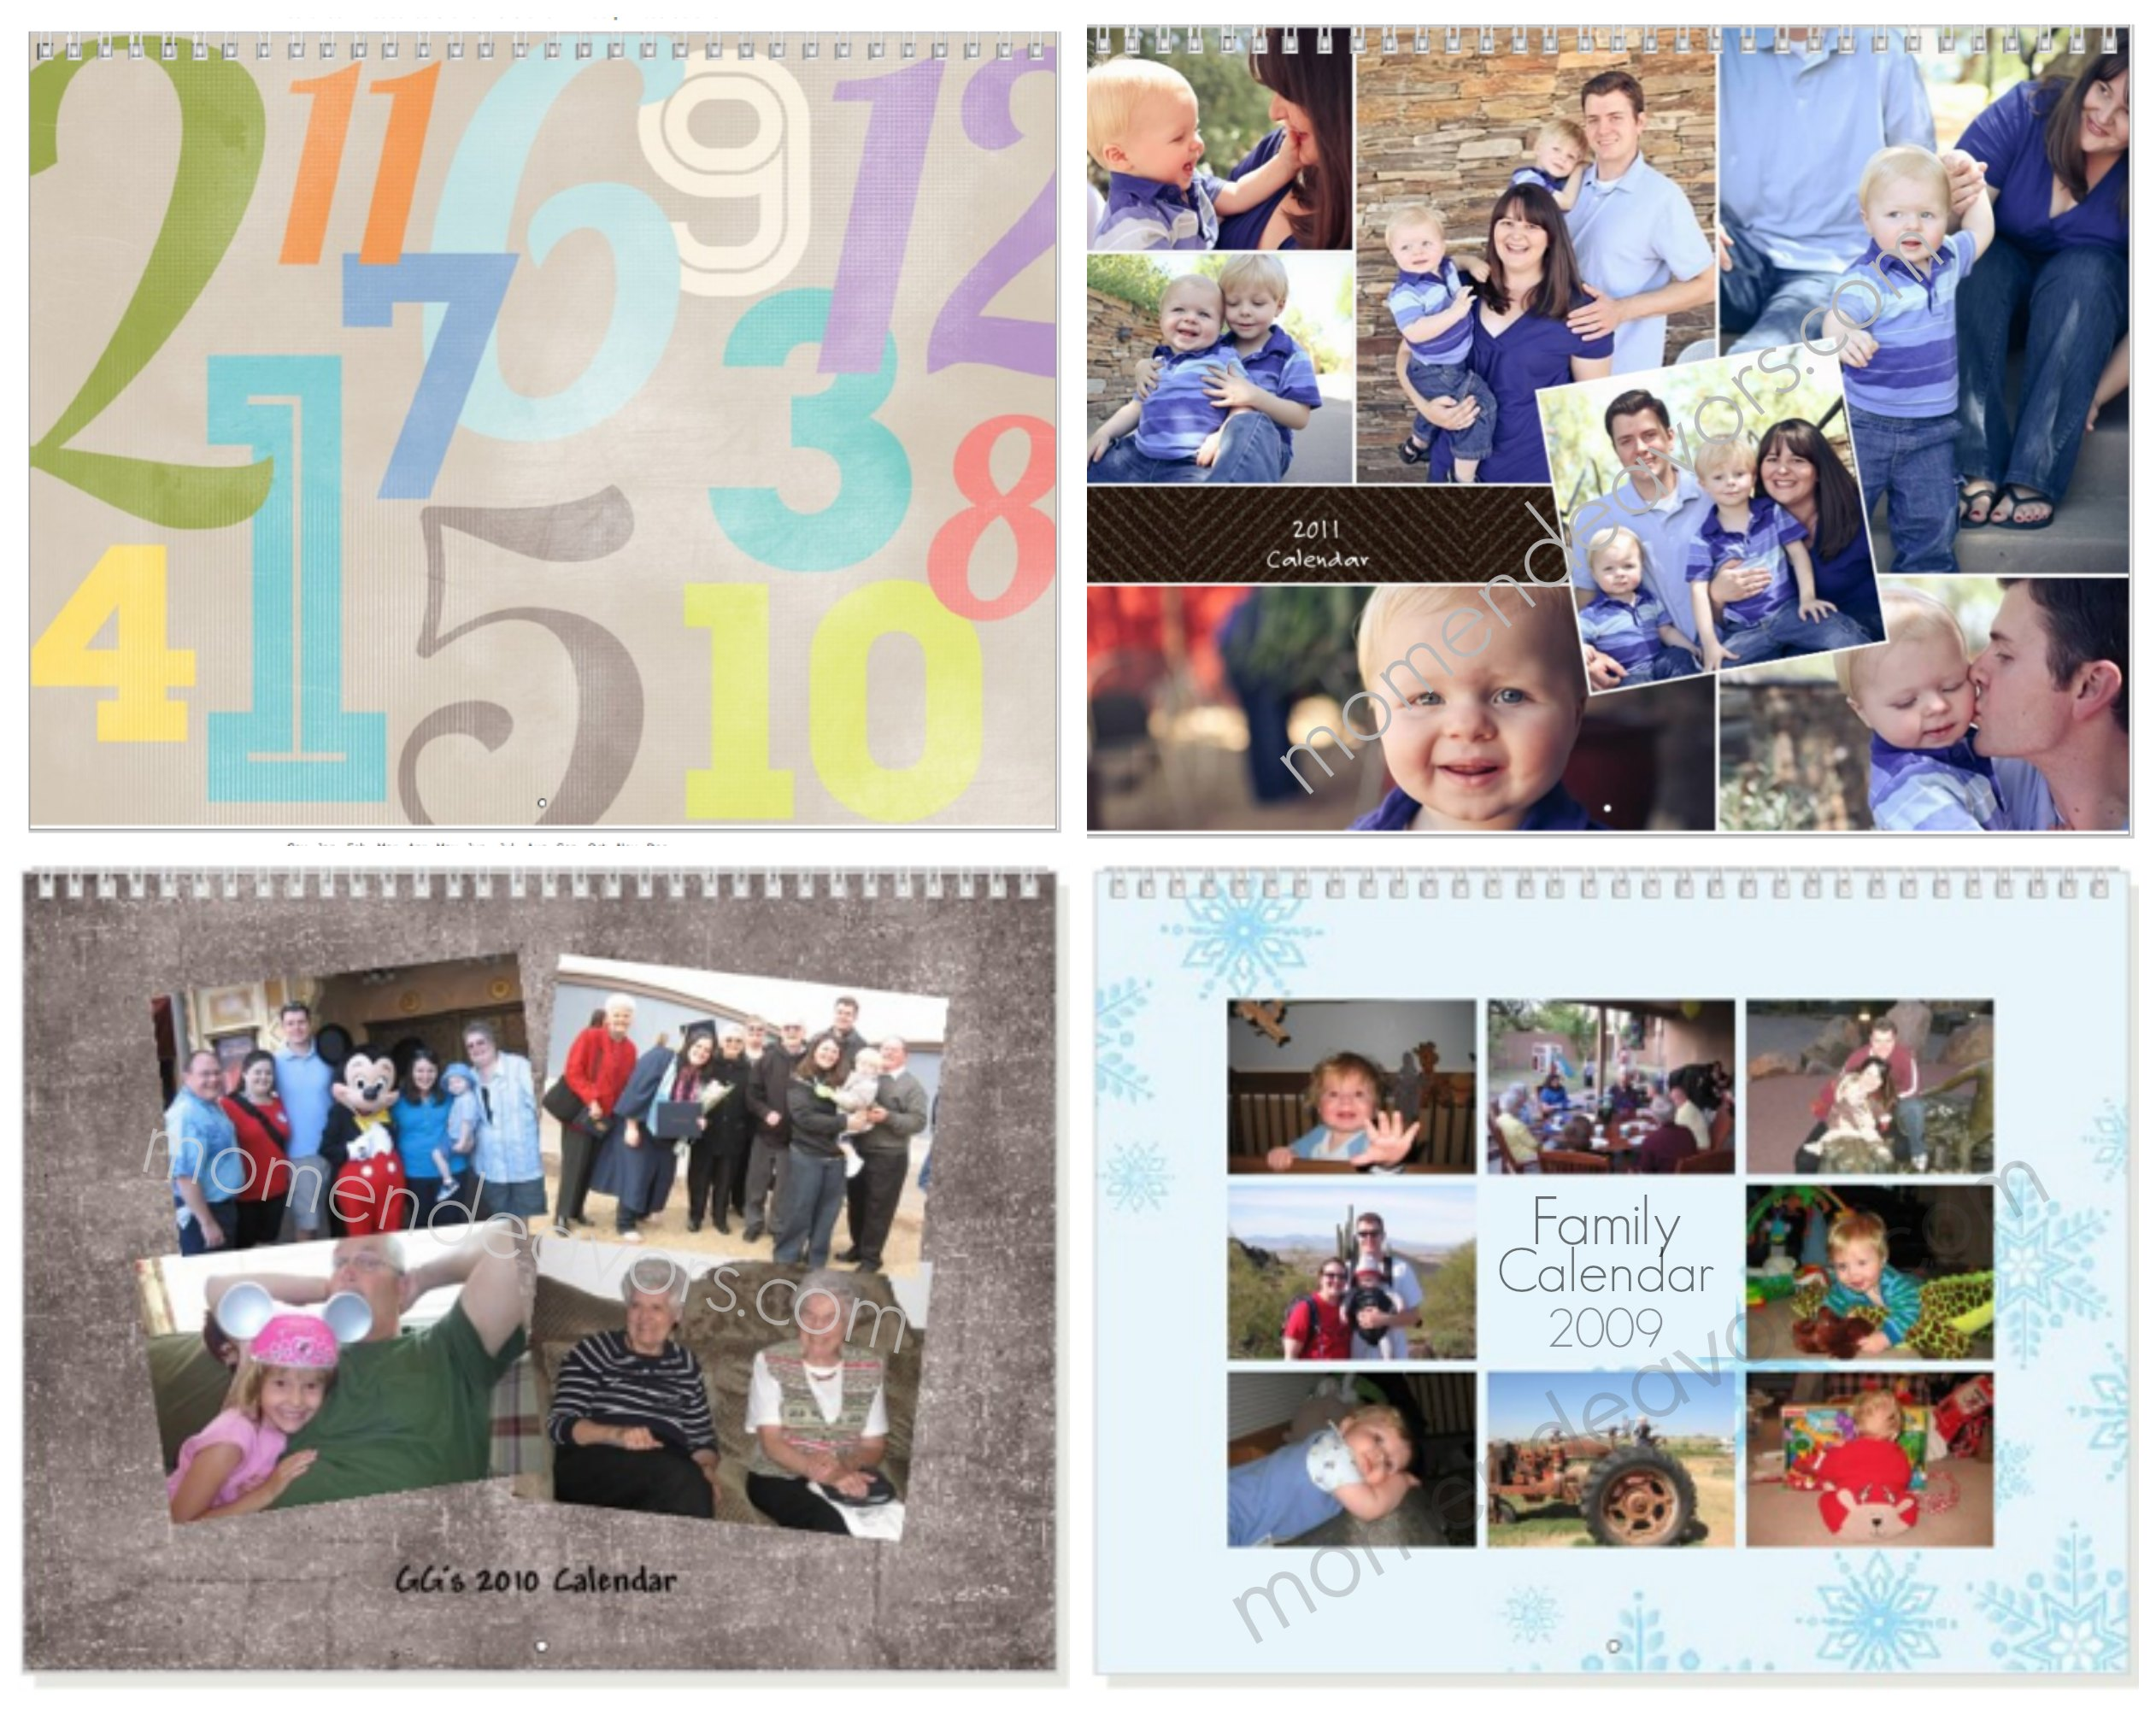 Every Year Calendar Starting Year End Habits Entrepreneurs Should Adopt Inc Shutterfly Calendars – A Christmas Gift Tradition